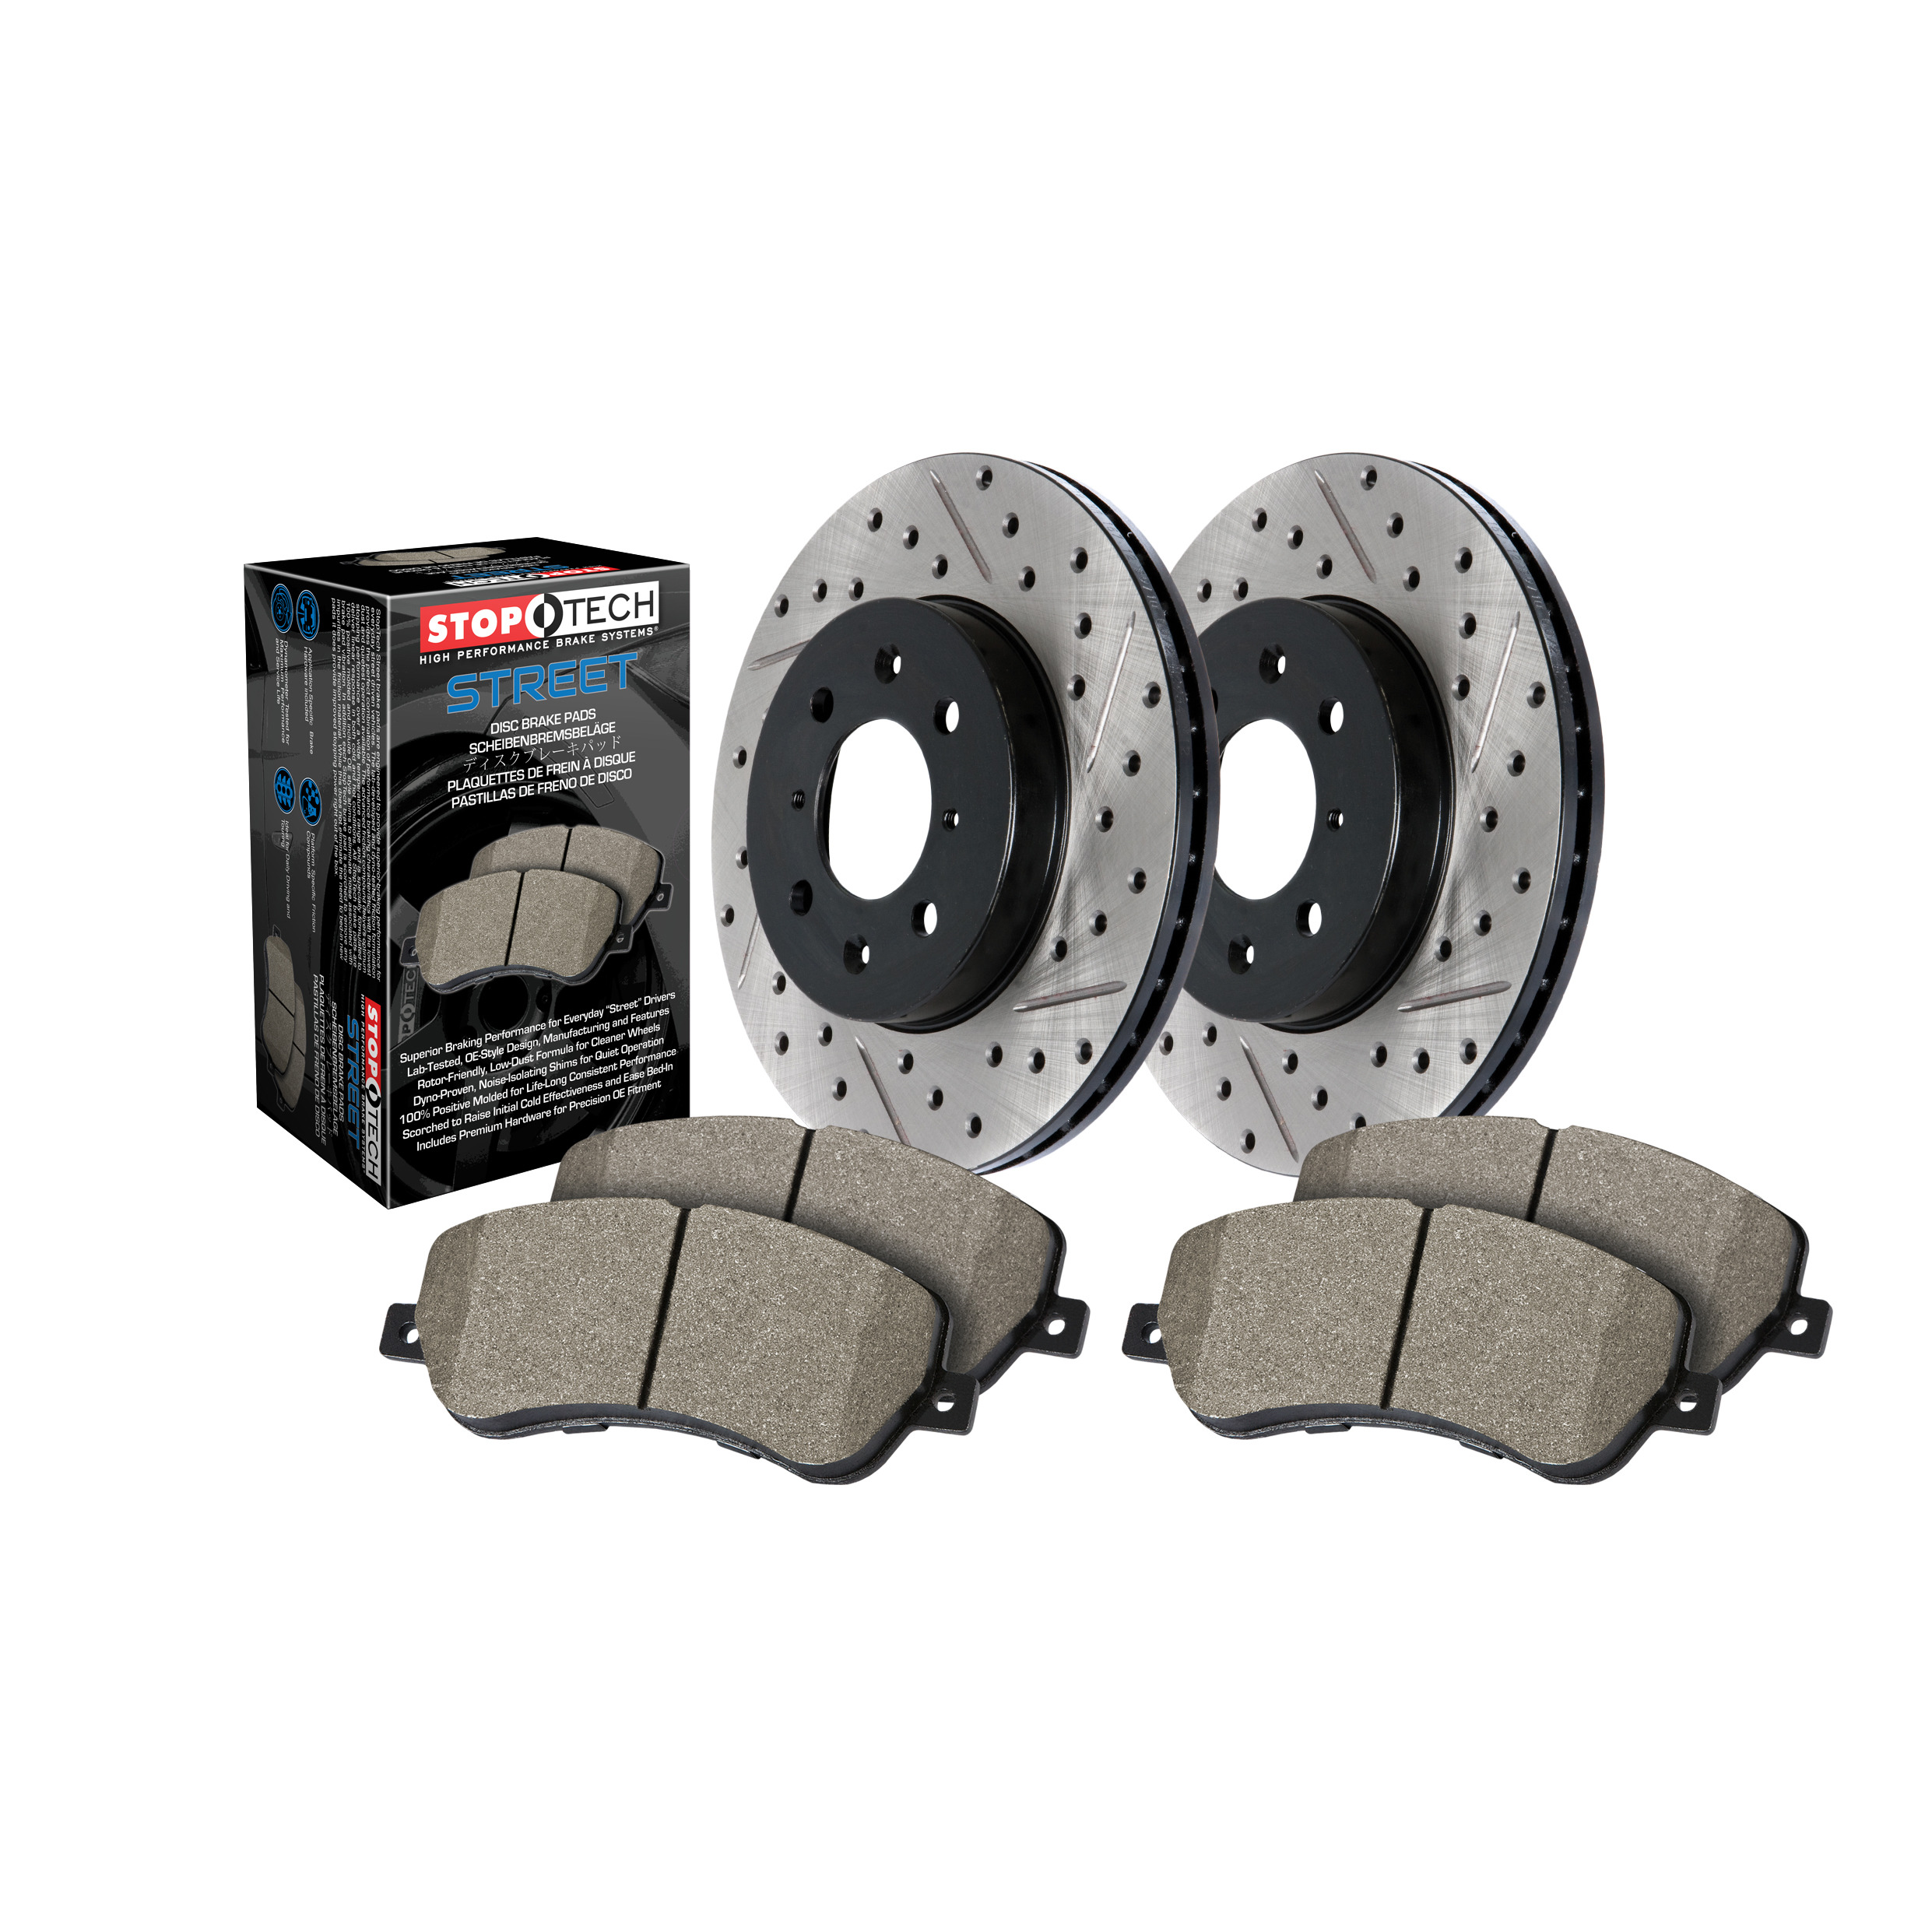 StopTech 308.16540 Street Brake Pads; Front with Shims and Hardware